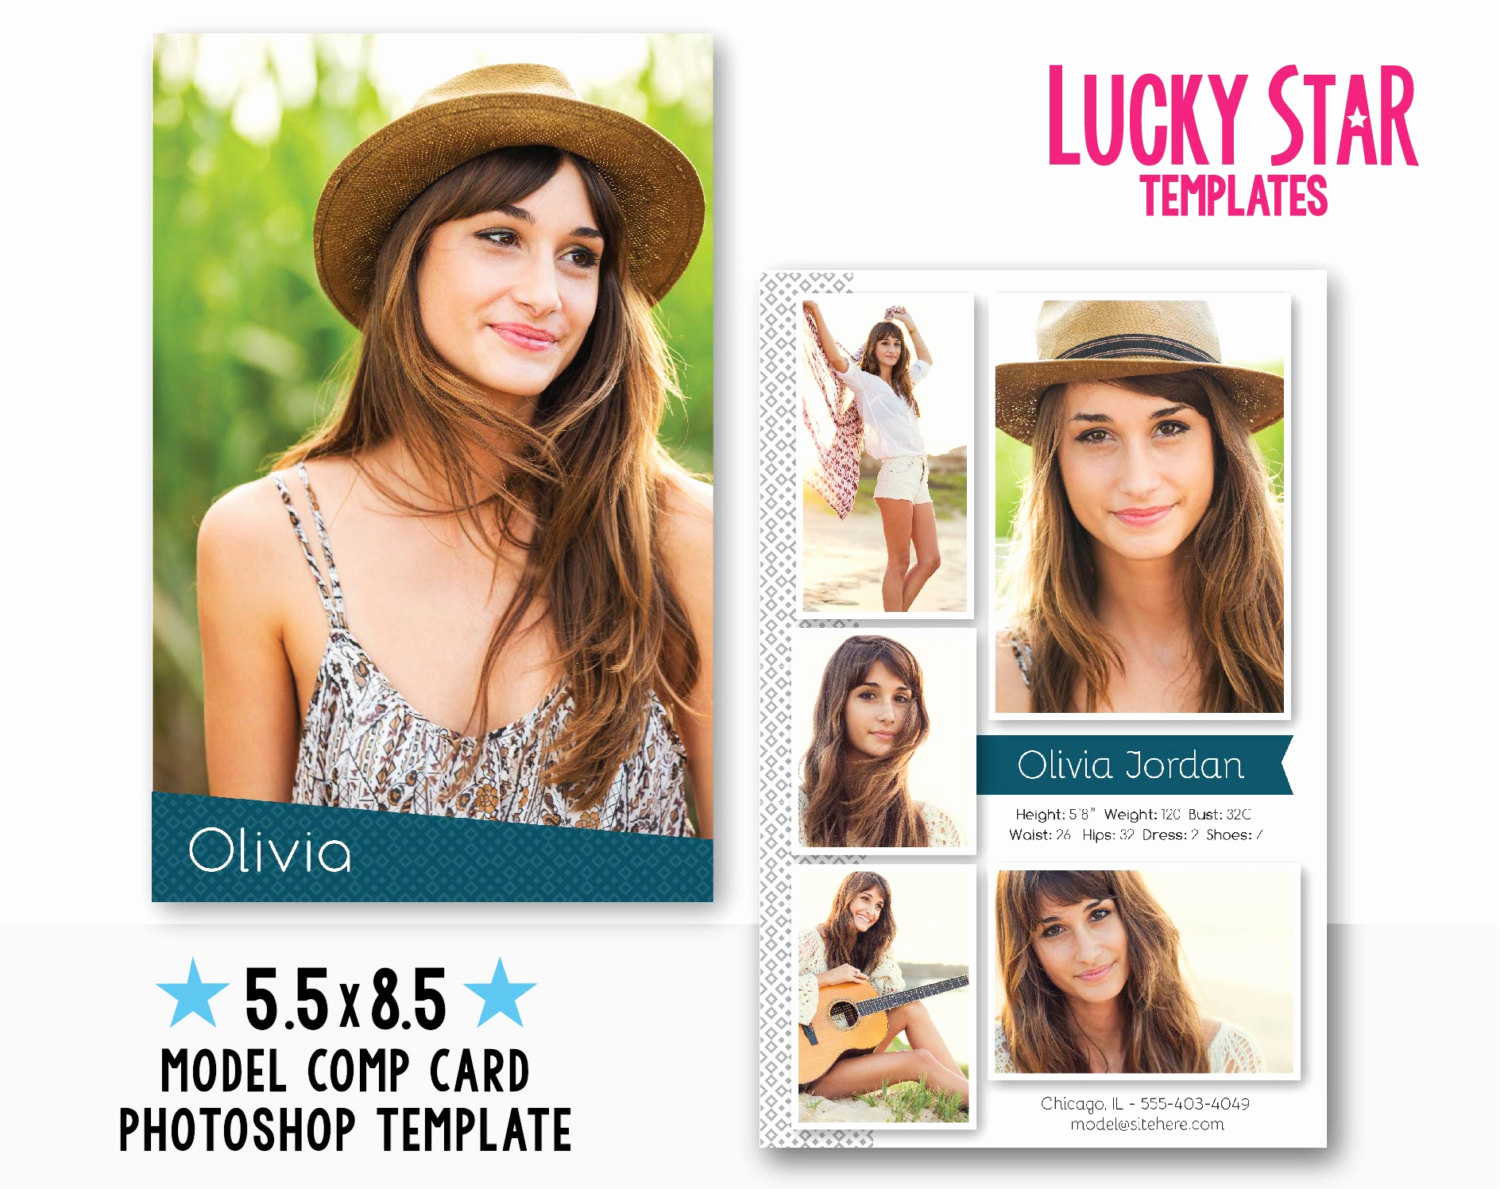 Model Comp Card Template Elegant Customizable Model P Card Fresh Face Instant Download